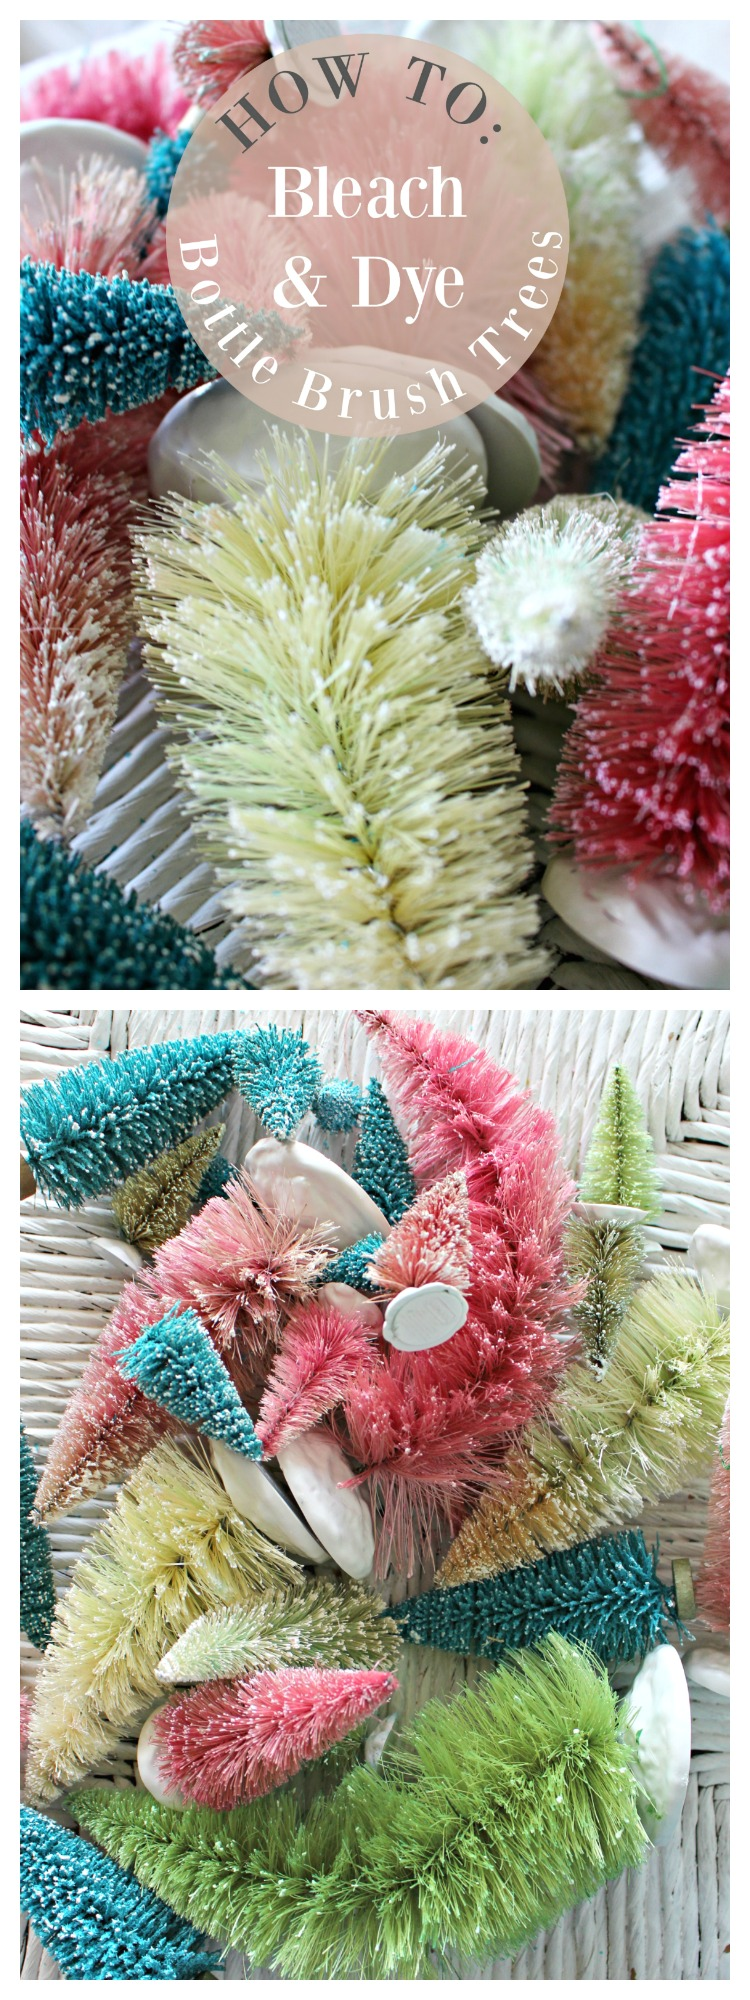 How to Bleach & Dye Bottle Brush Trees to Match Your Christmas Decor! #ChristmasCrafts